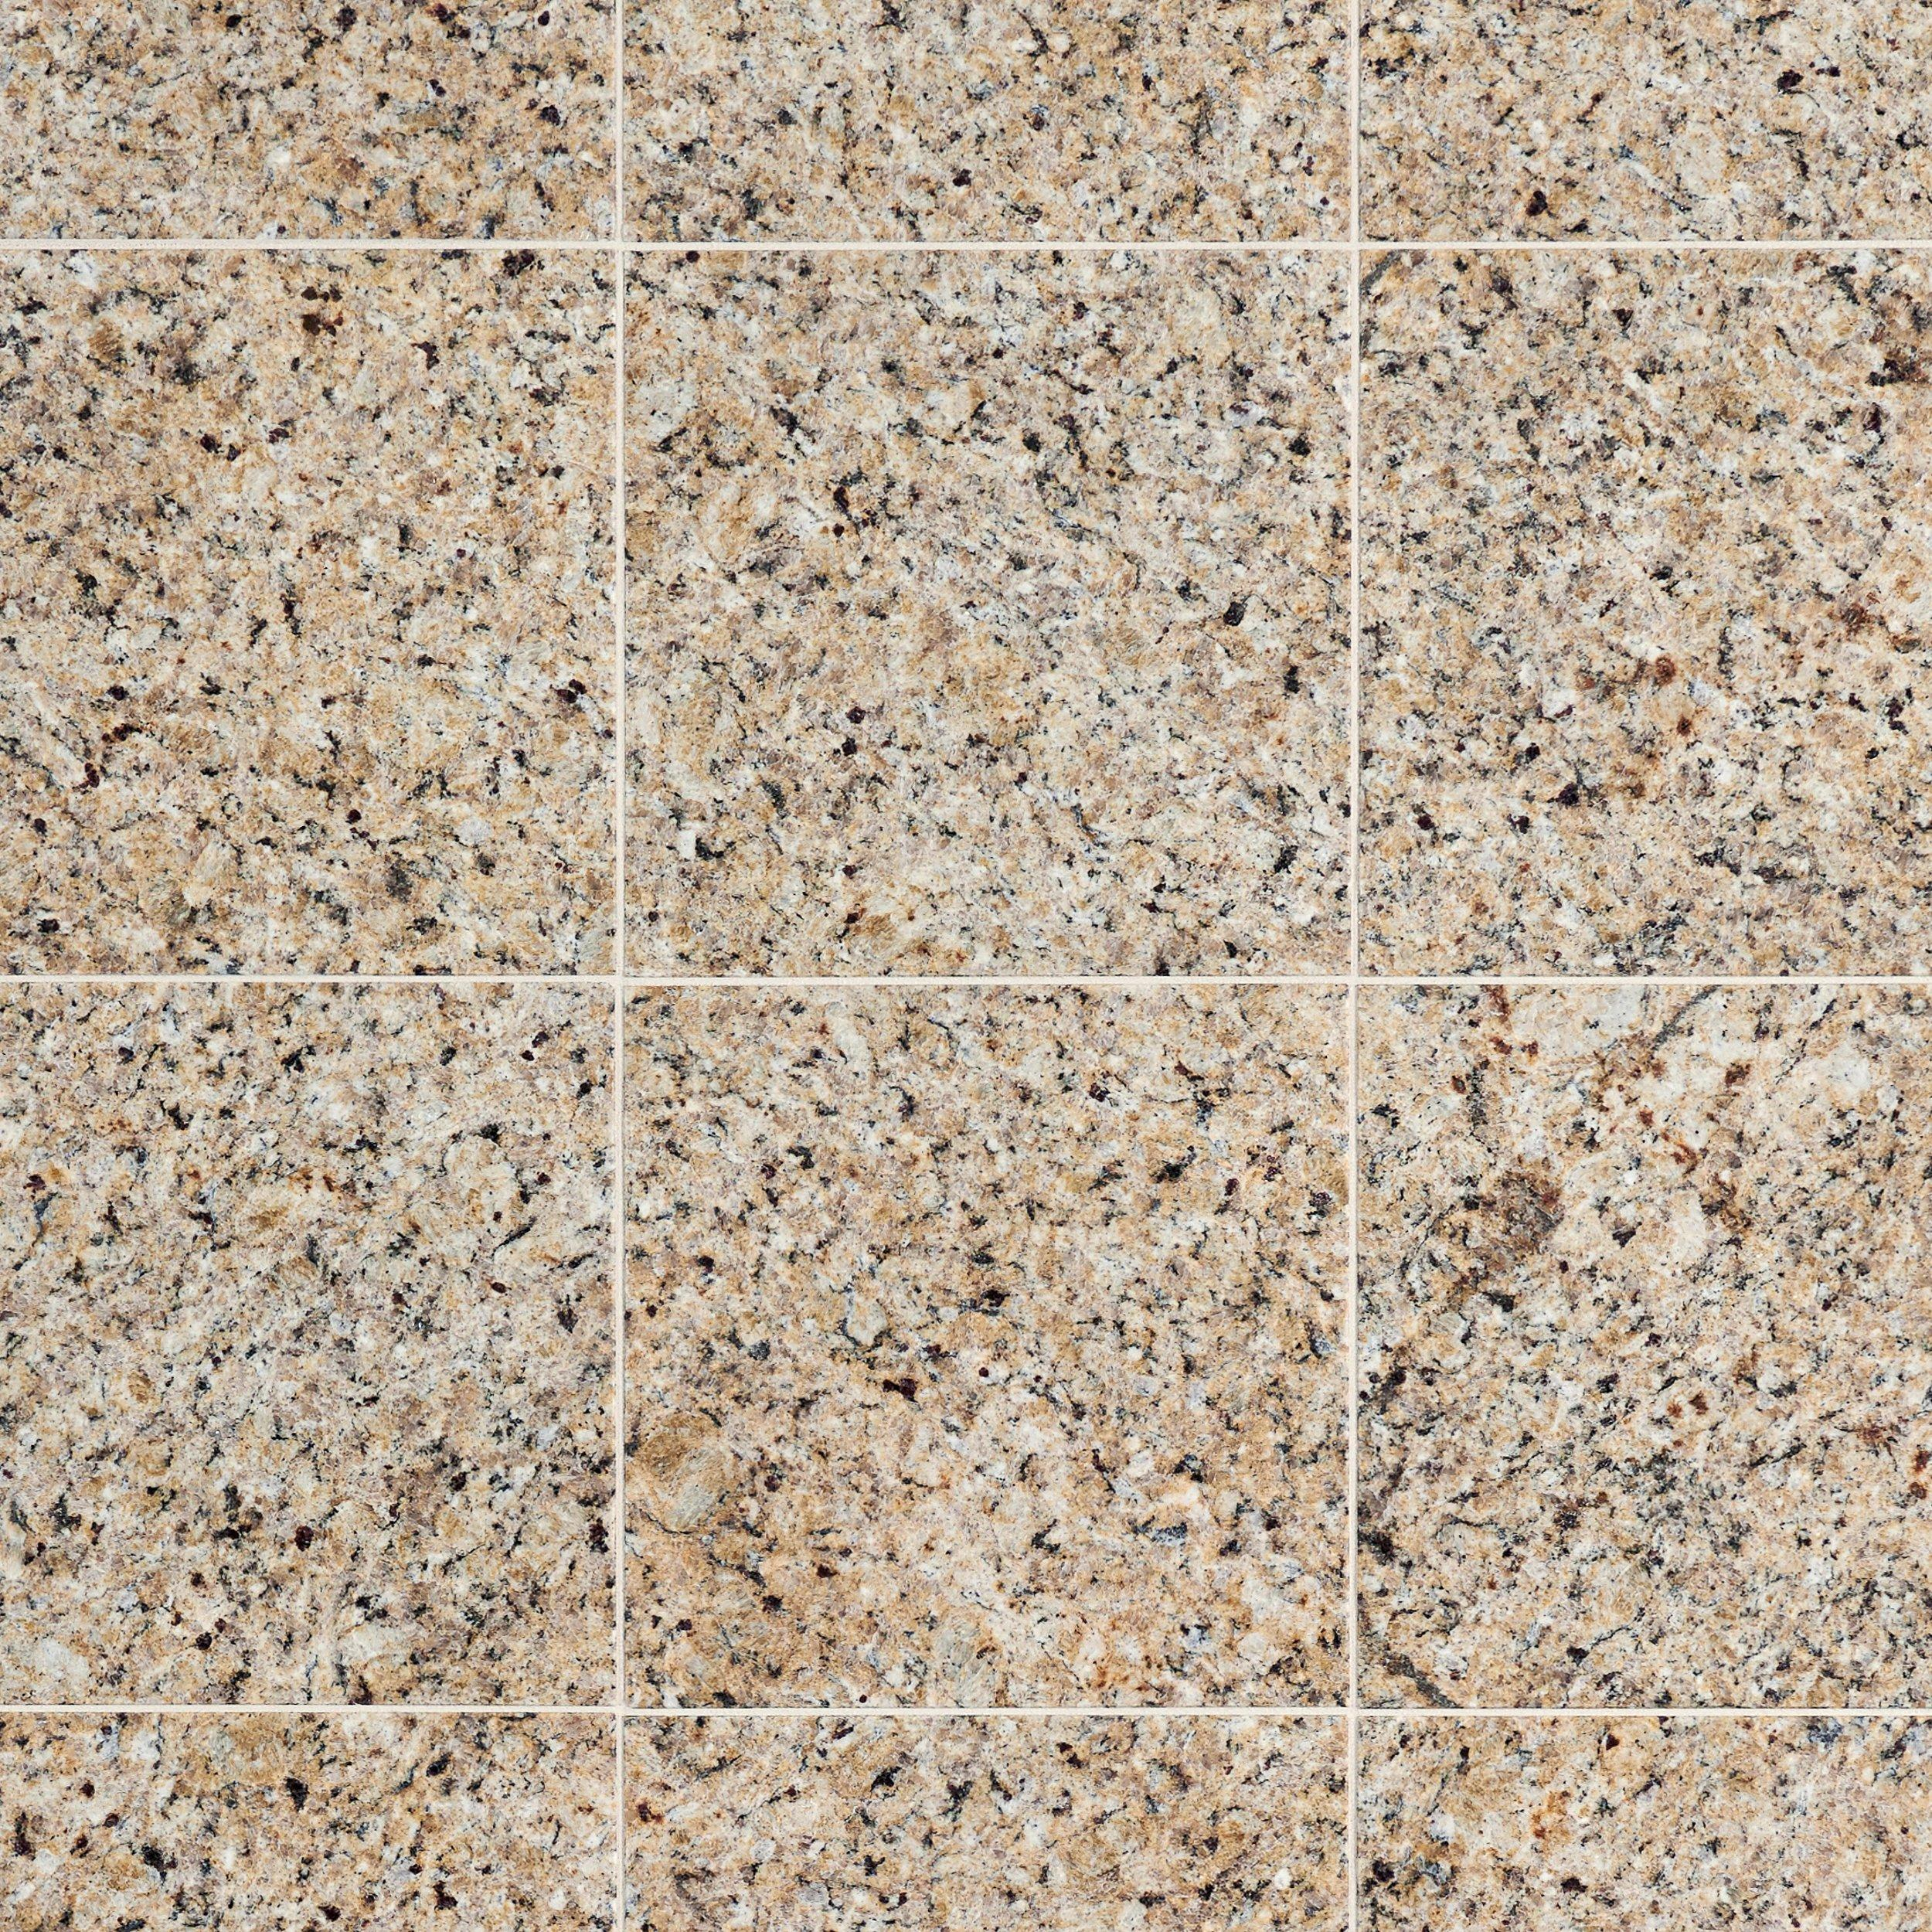 granite floor yellow star granite tile TBIVTIG